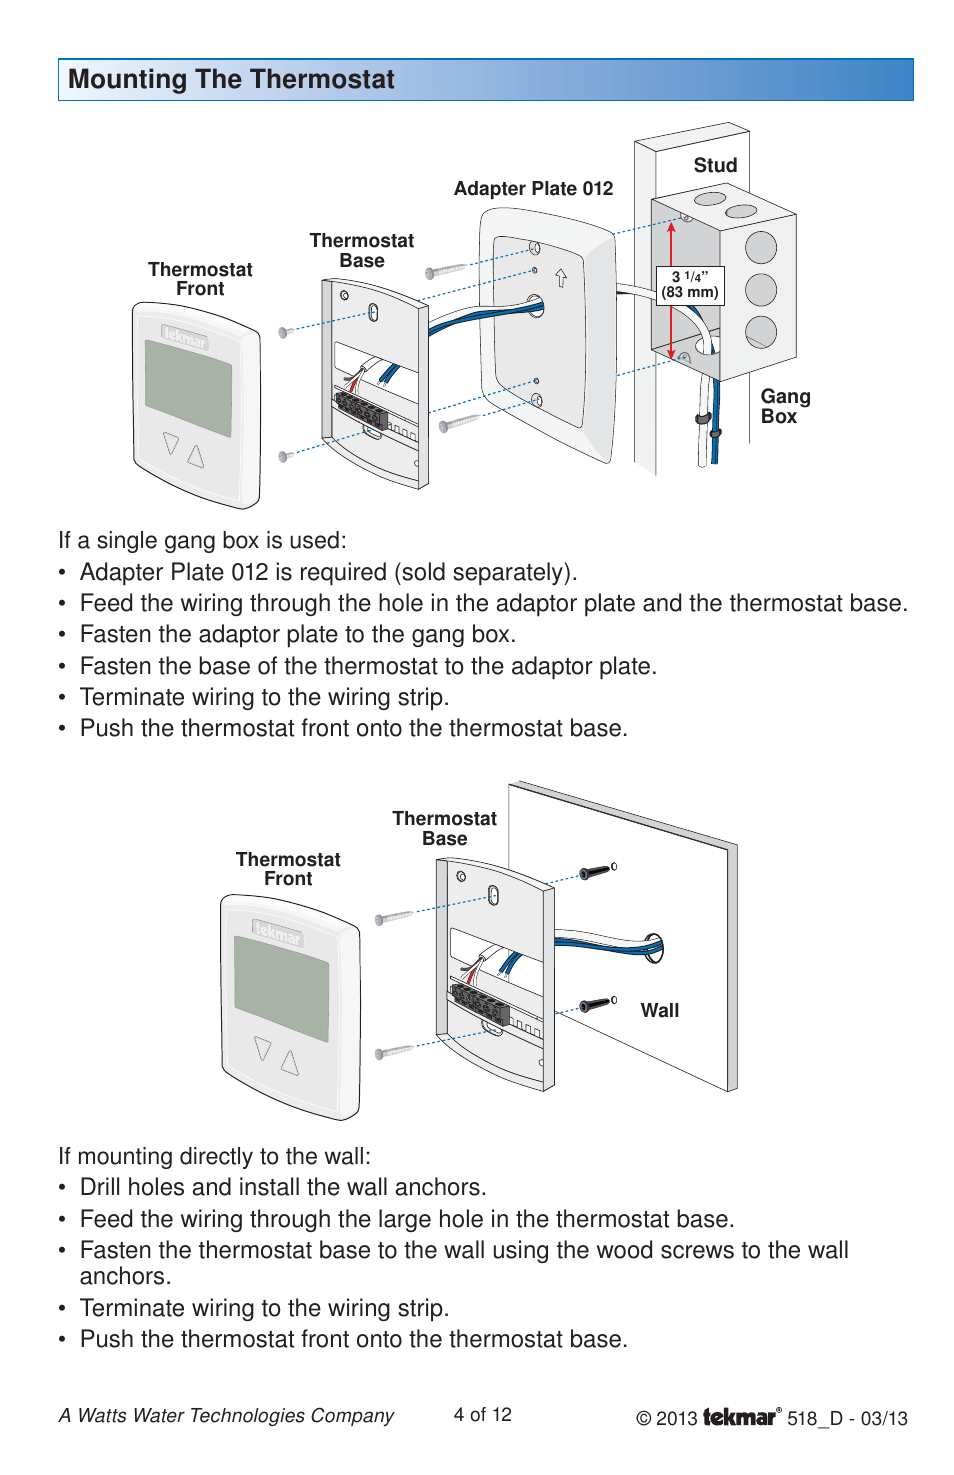 medium resolution of mounting the thermostat if mounting directly to the wall if a tekmar 518 wiring diagram